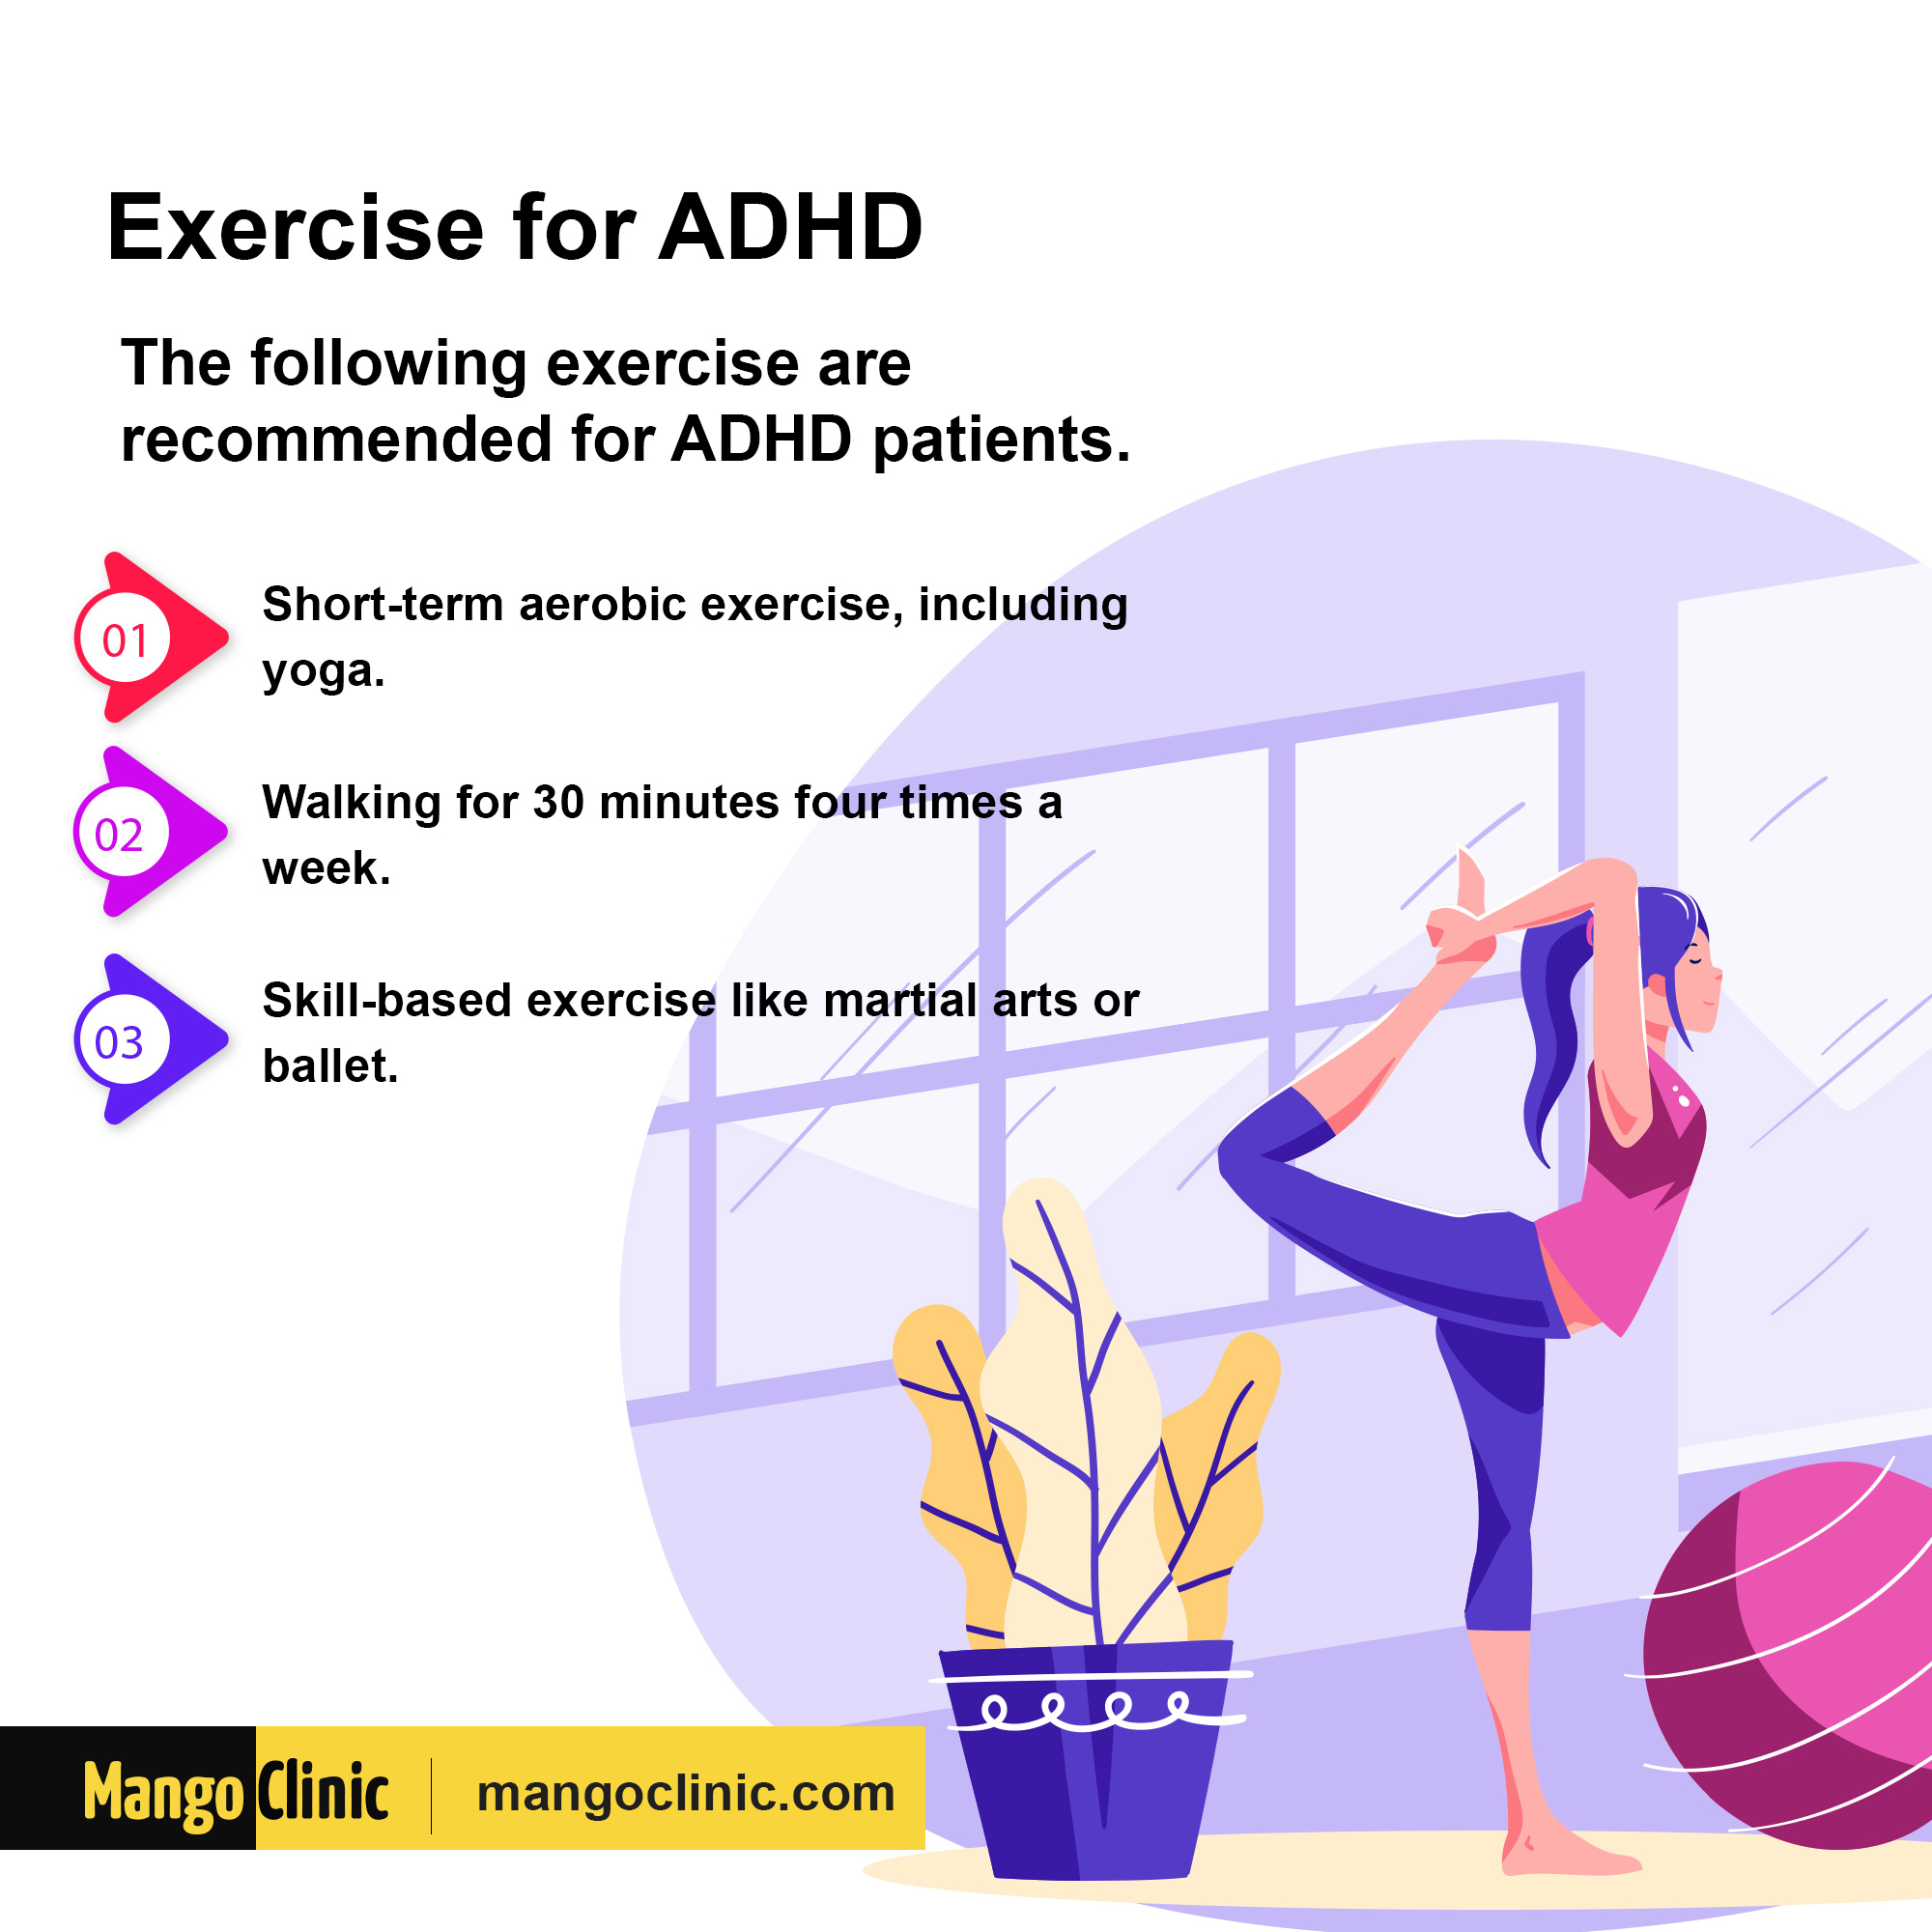 Exercises for attention deficit hyperactivity disorder